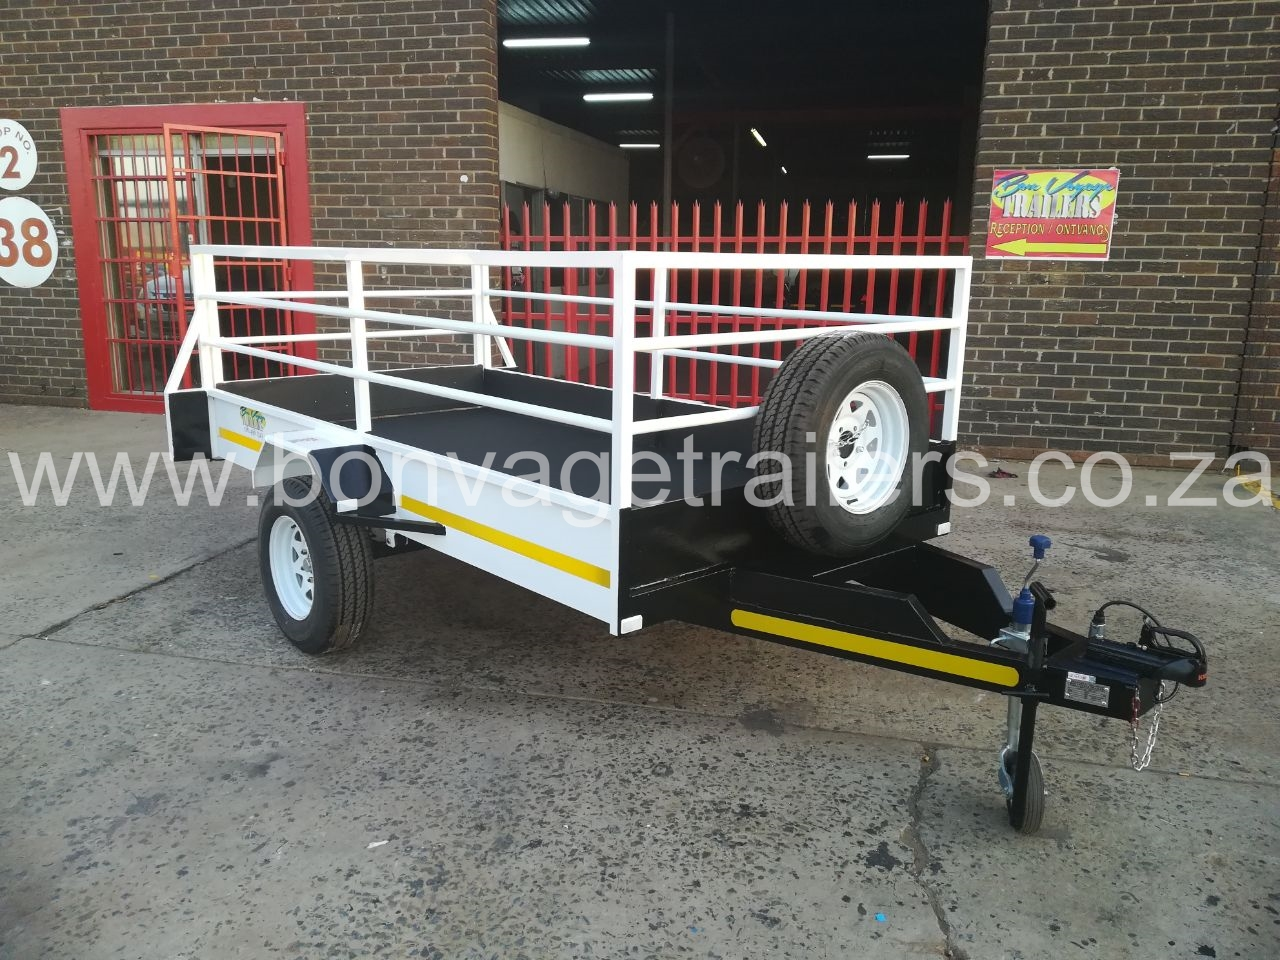 STANDARD 3 METER UTILITY TRAILER FOR SALE